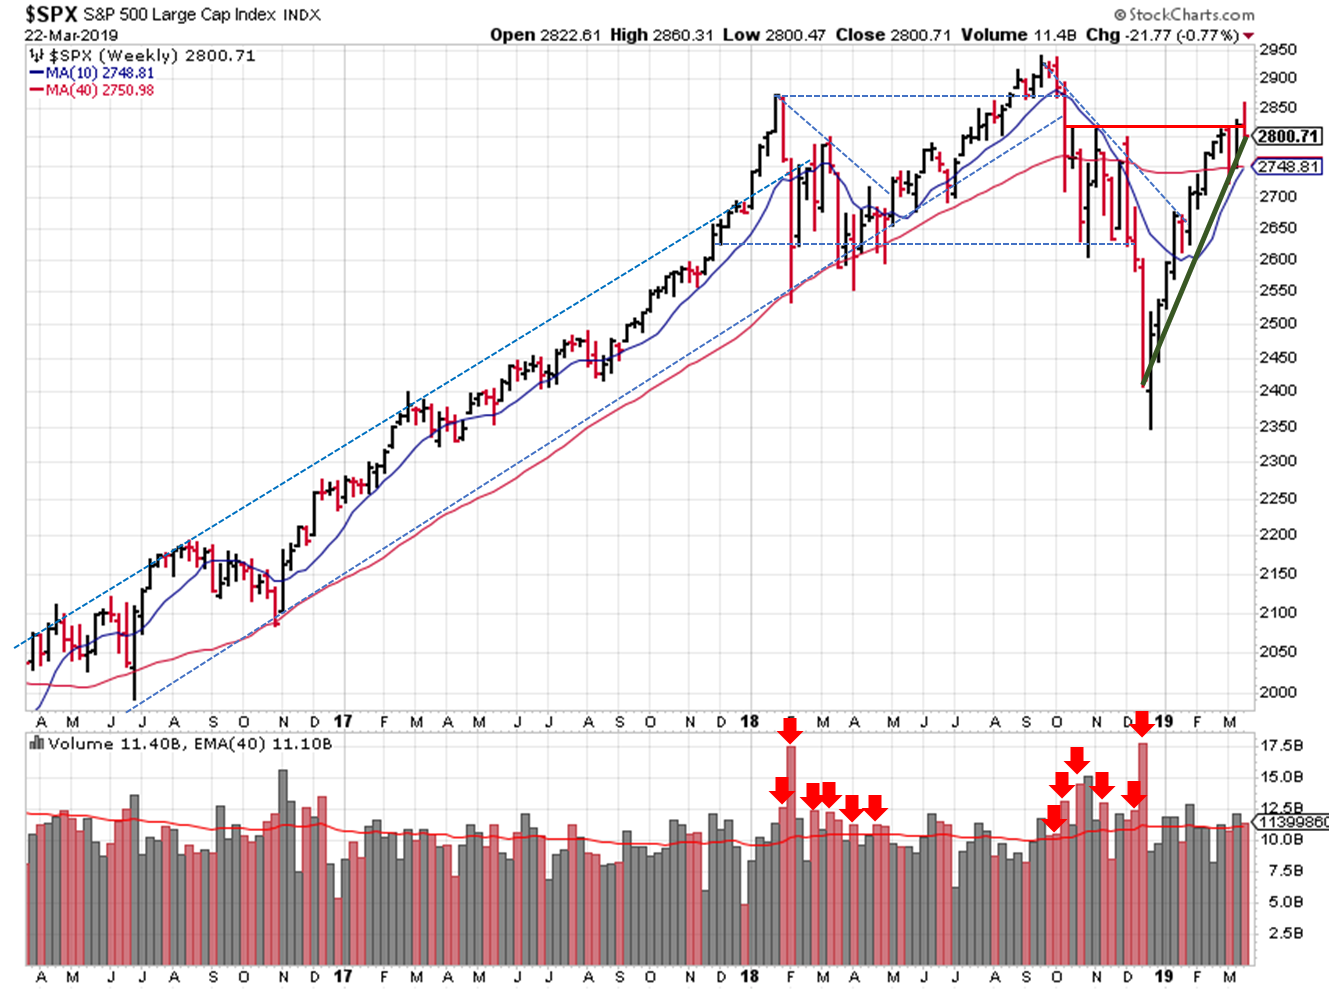 2019-03-22 - $SPX Trendline Analysis - Weekly